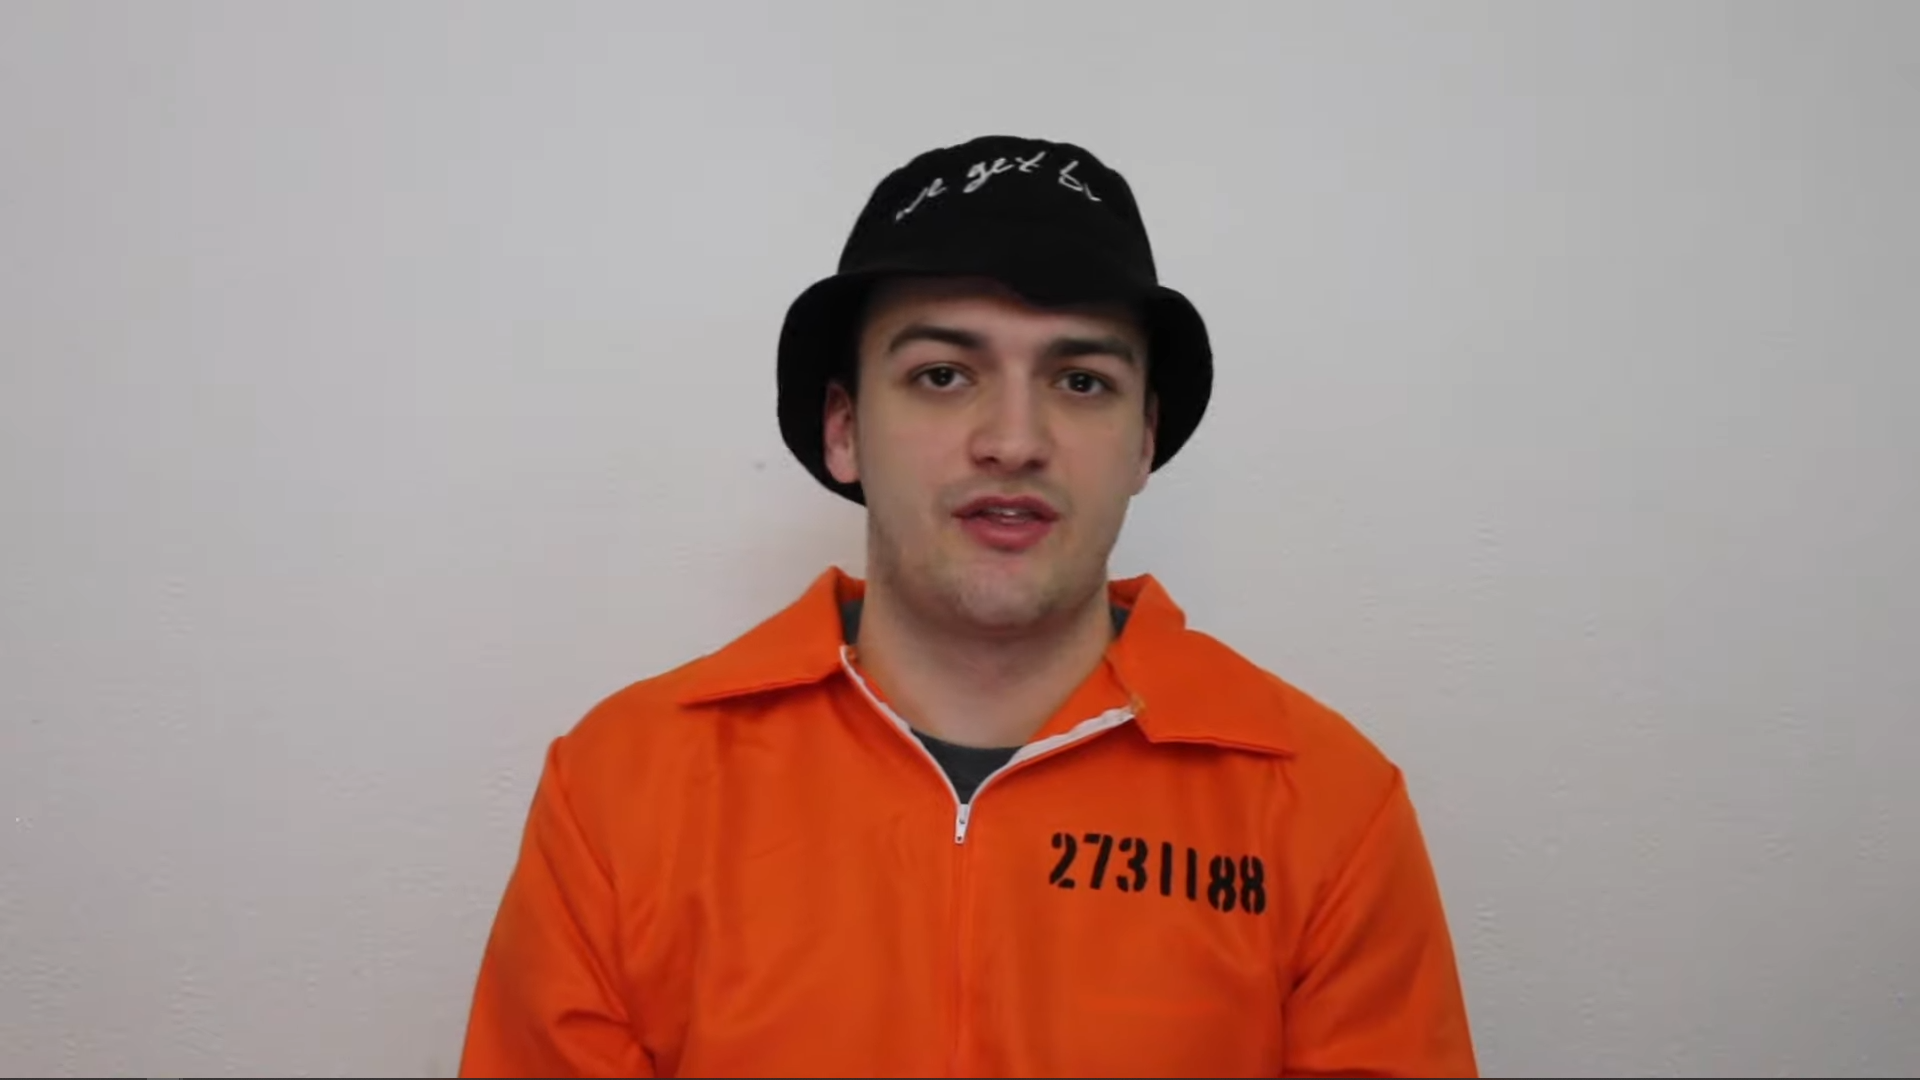 Harry Hesketh in prison outfit